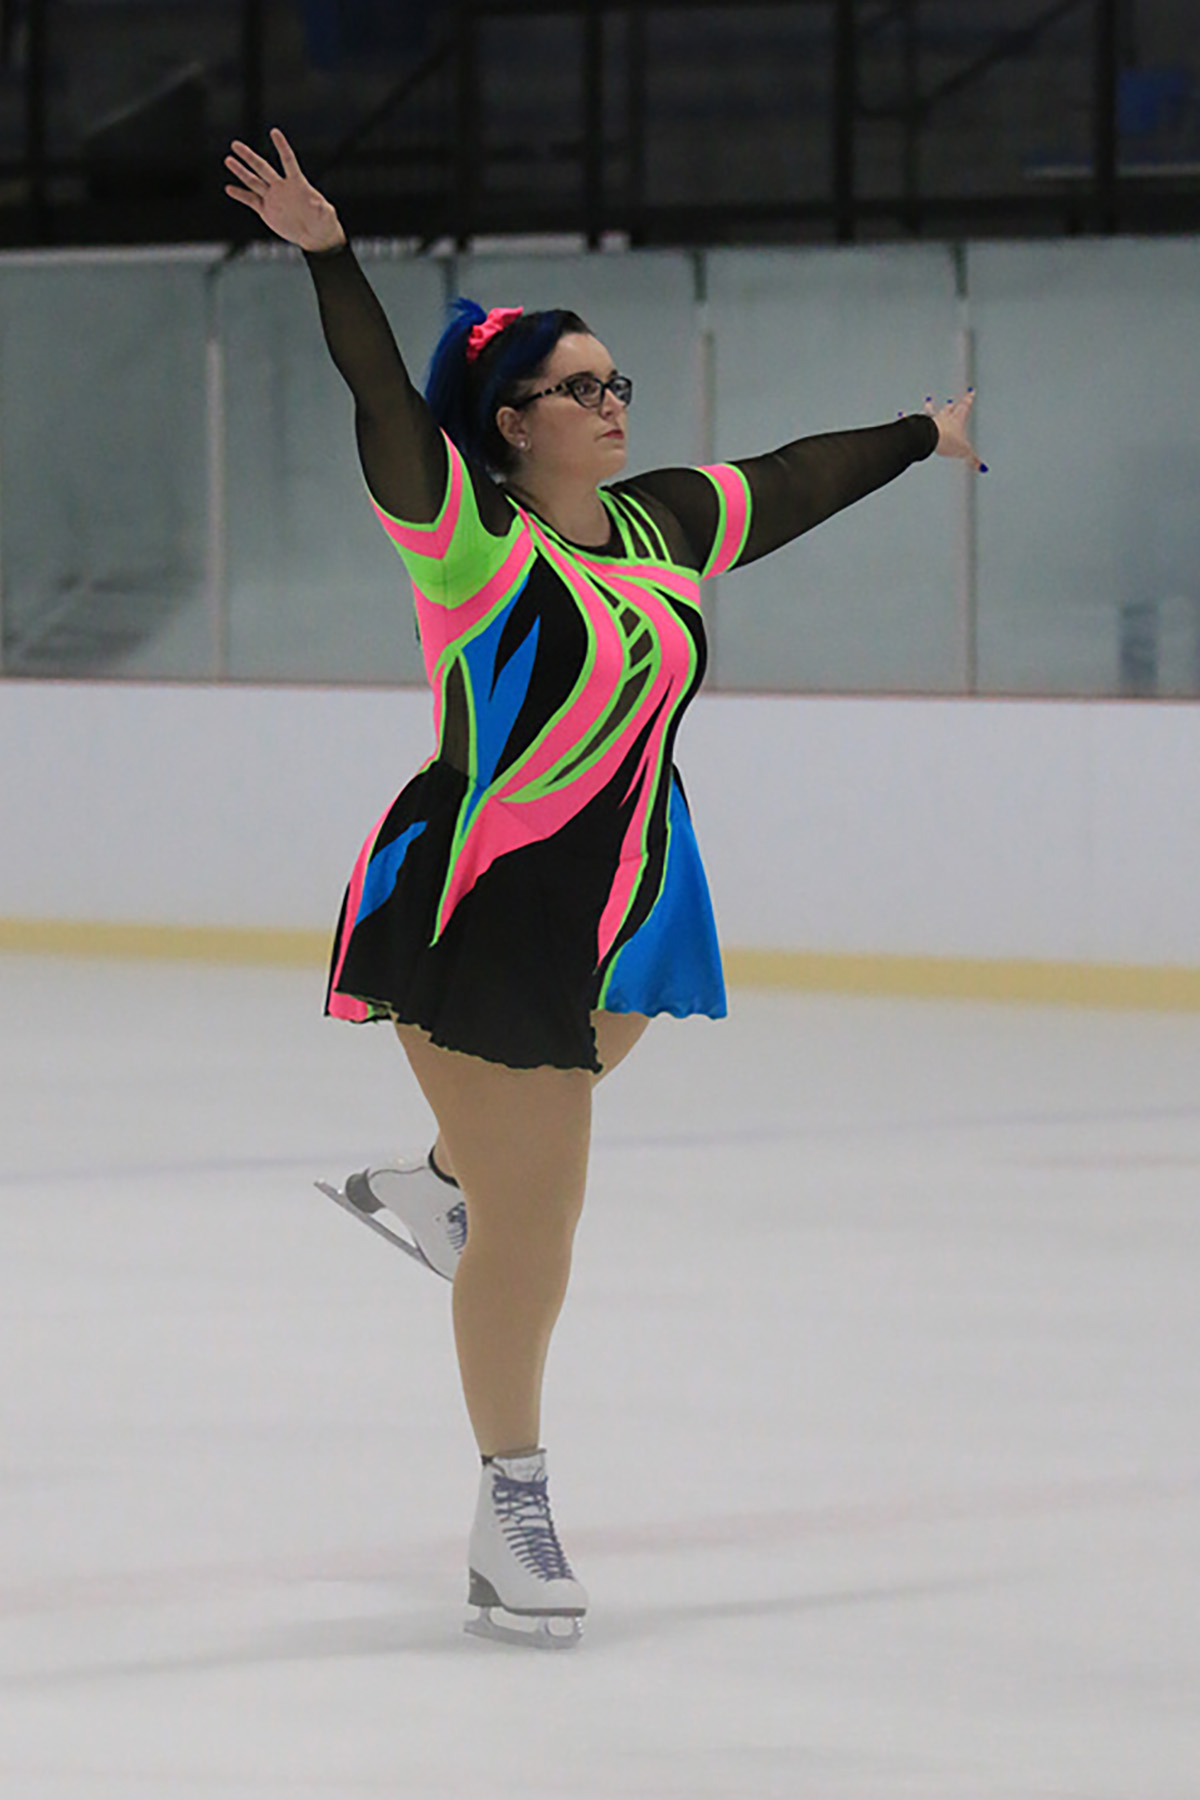 A gorgeous dark haired woman with glasses is alone on the ice, skating her routine in this 80s themed skating dress.